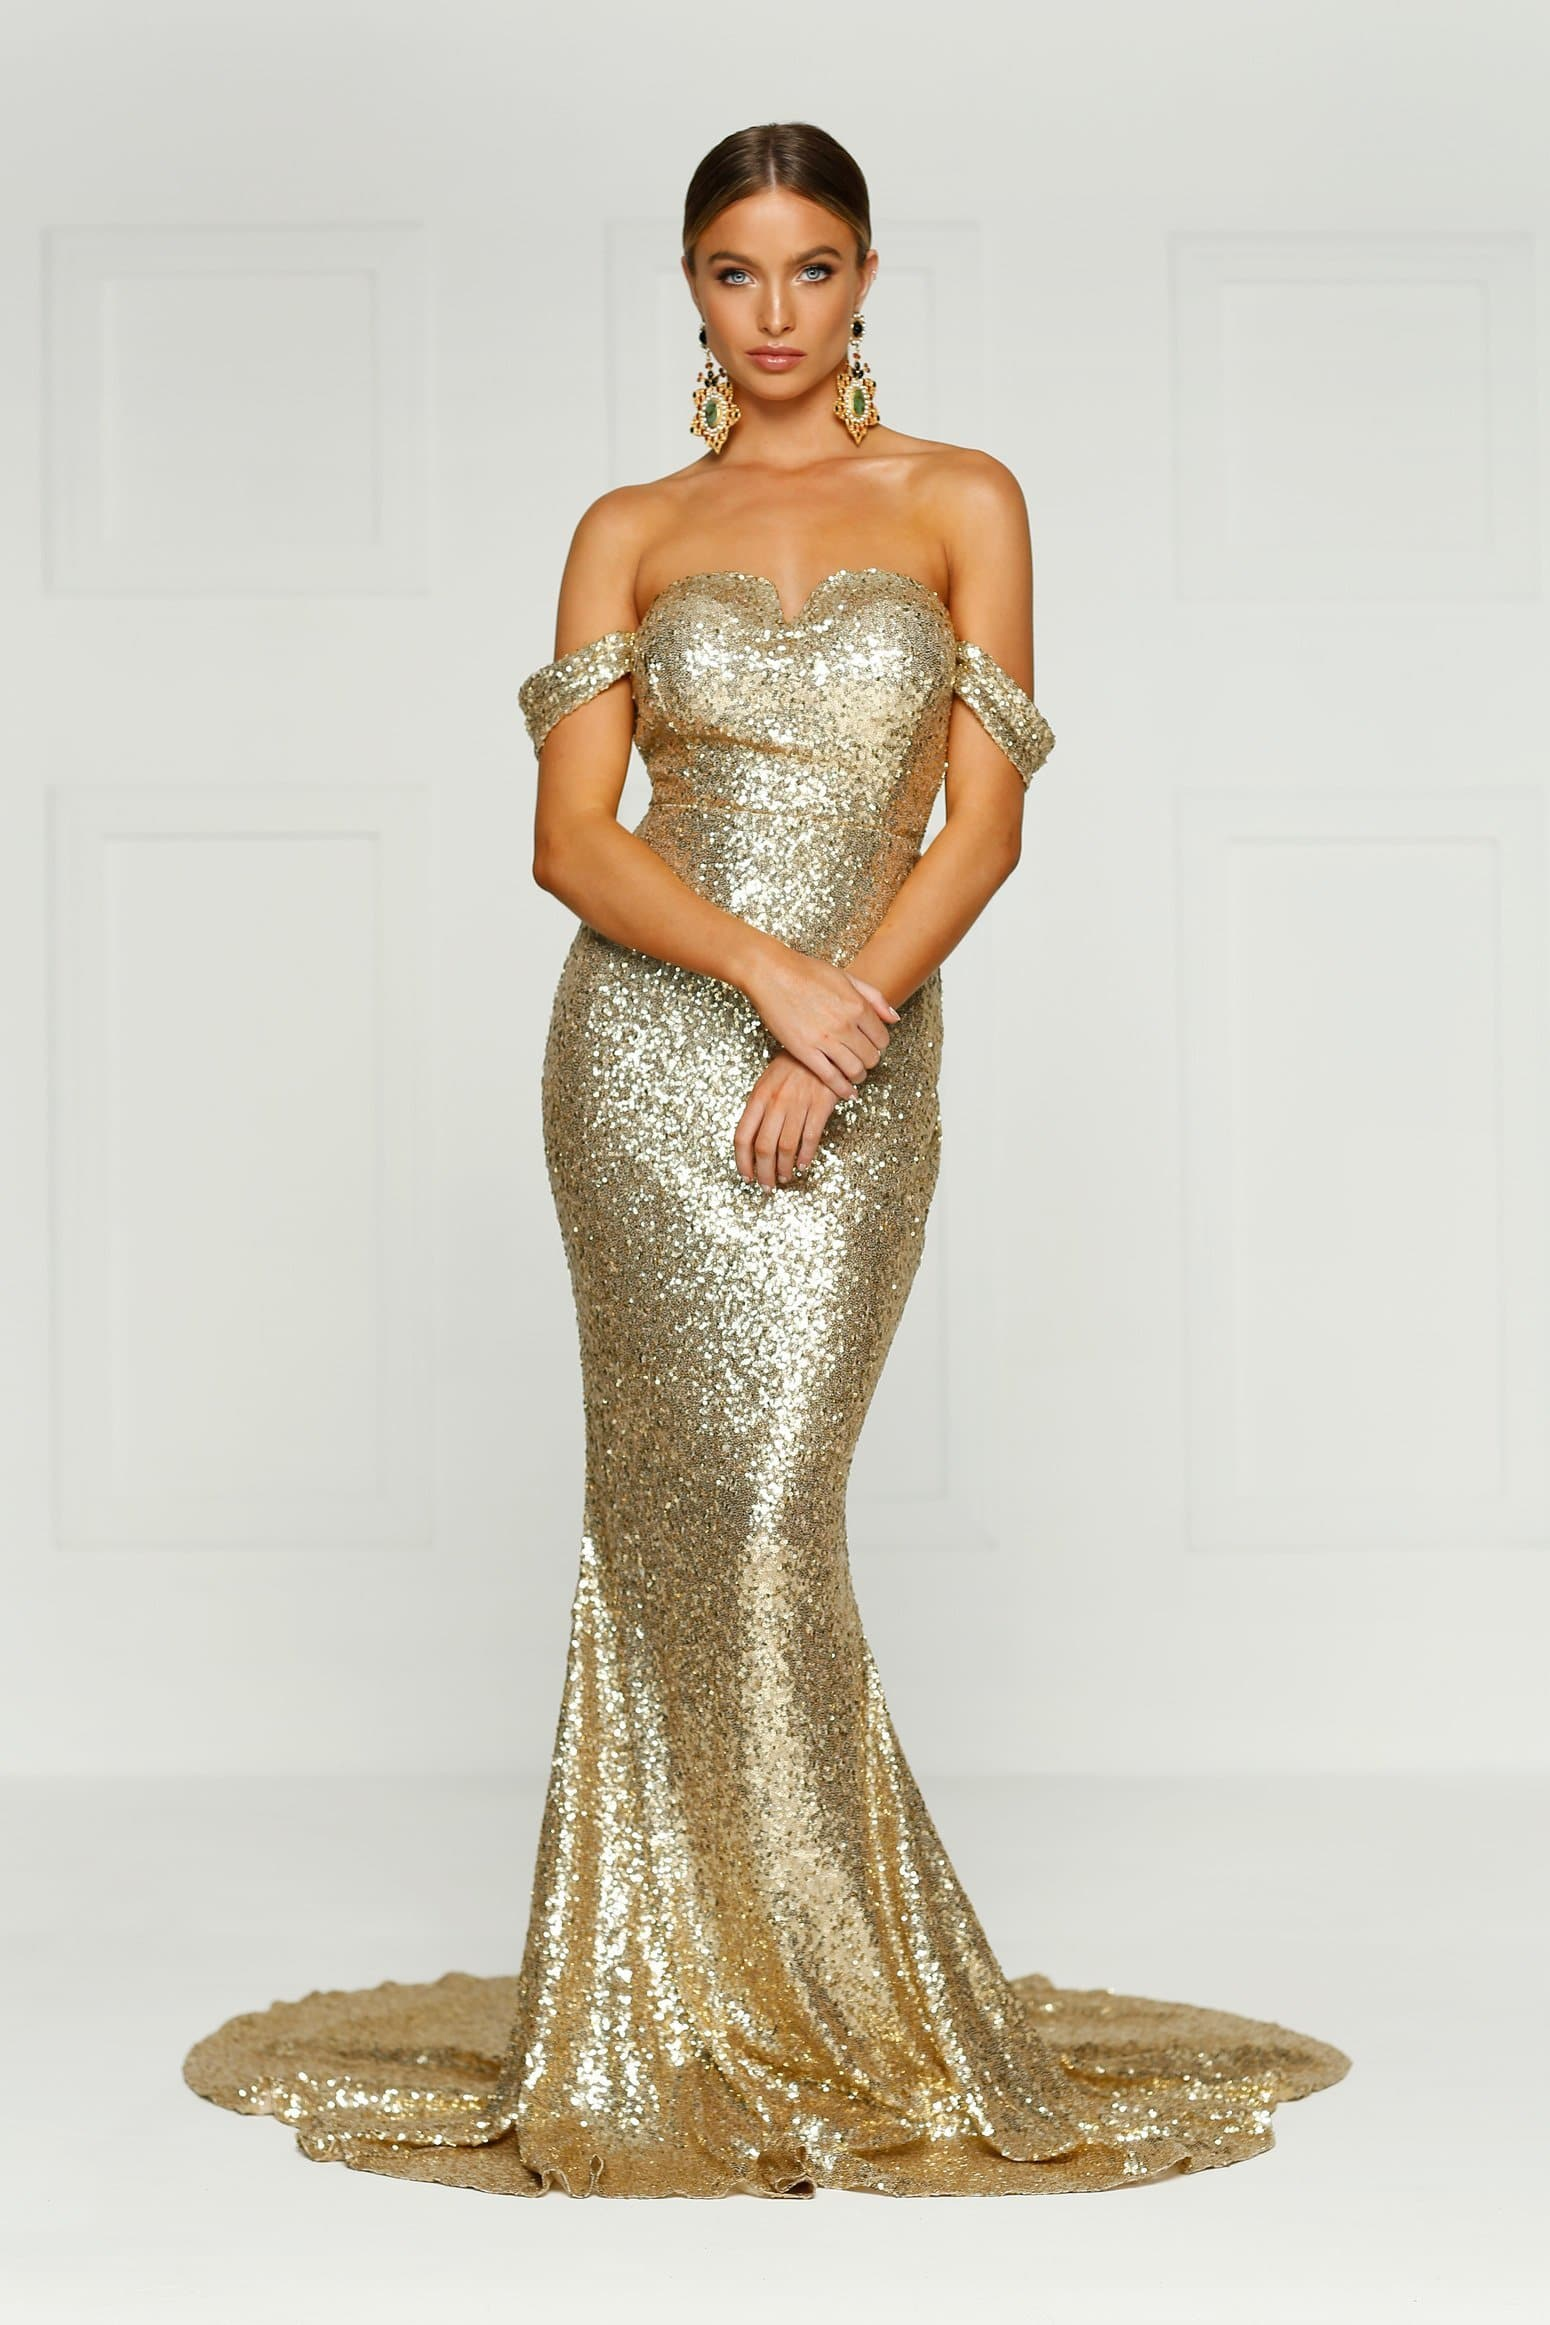 Jonquiller Sequins Gown - Gold Evening Dress with Mermaid Train